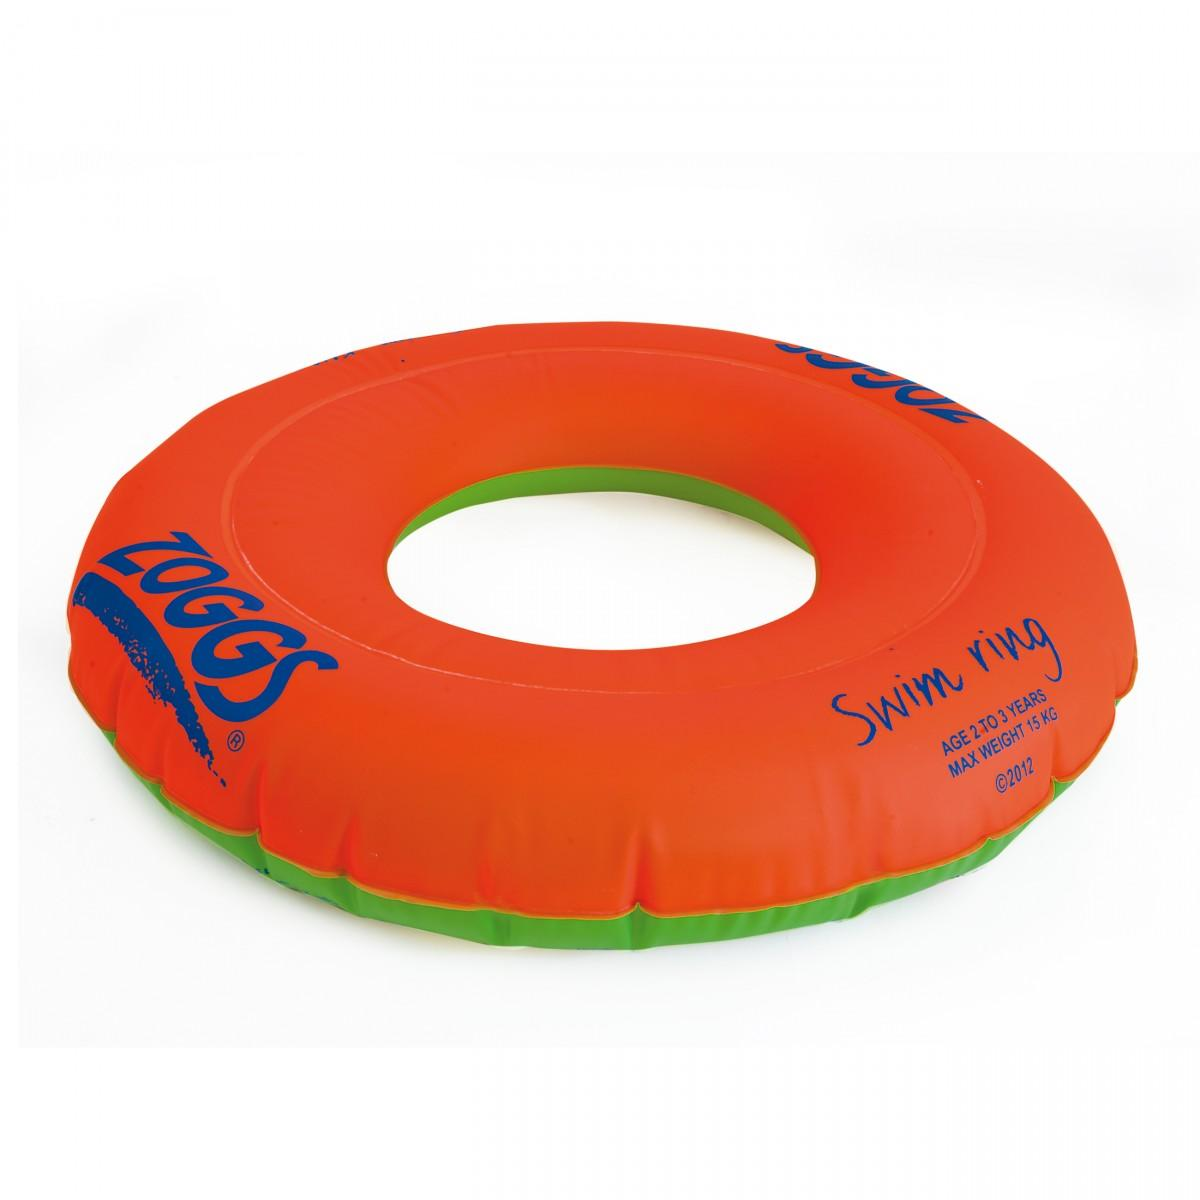 peach ozfloat and trainer pumpkins copy float of rings ring swimming swim flotation products baby pool afgfdg